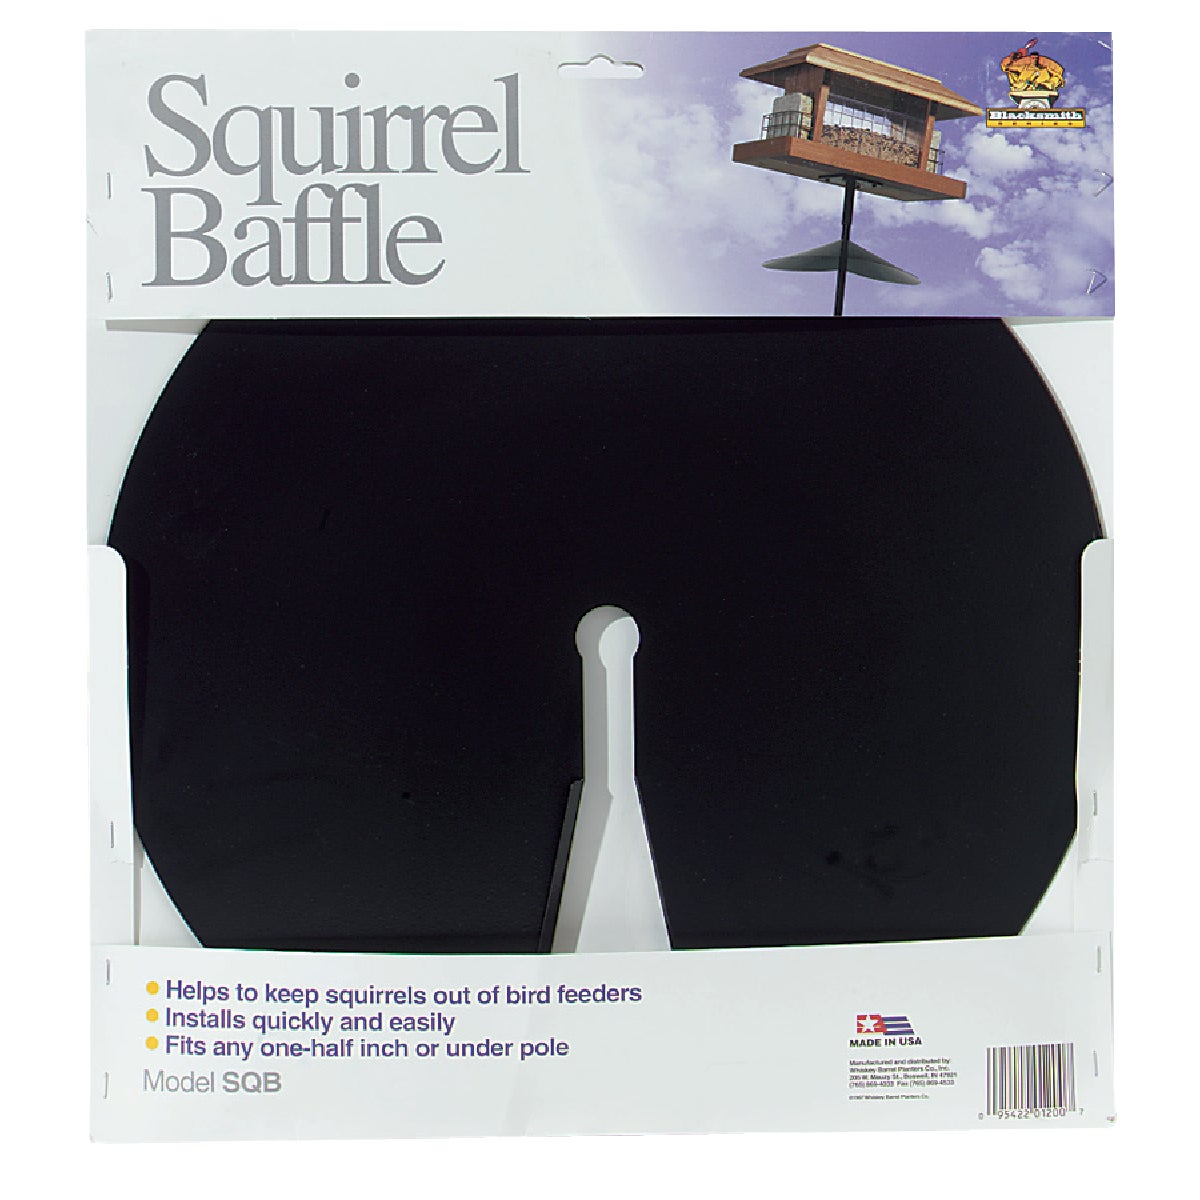 SQUIRREL BAFFLE - SQB by American Gardenworks